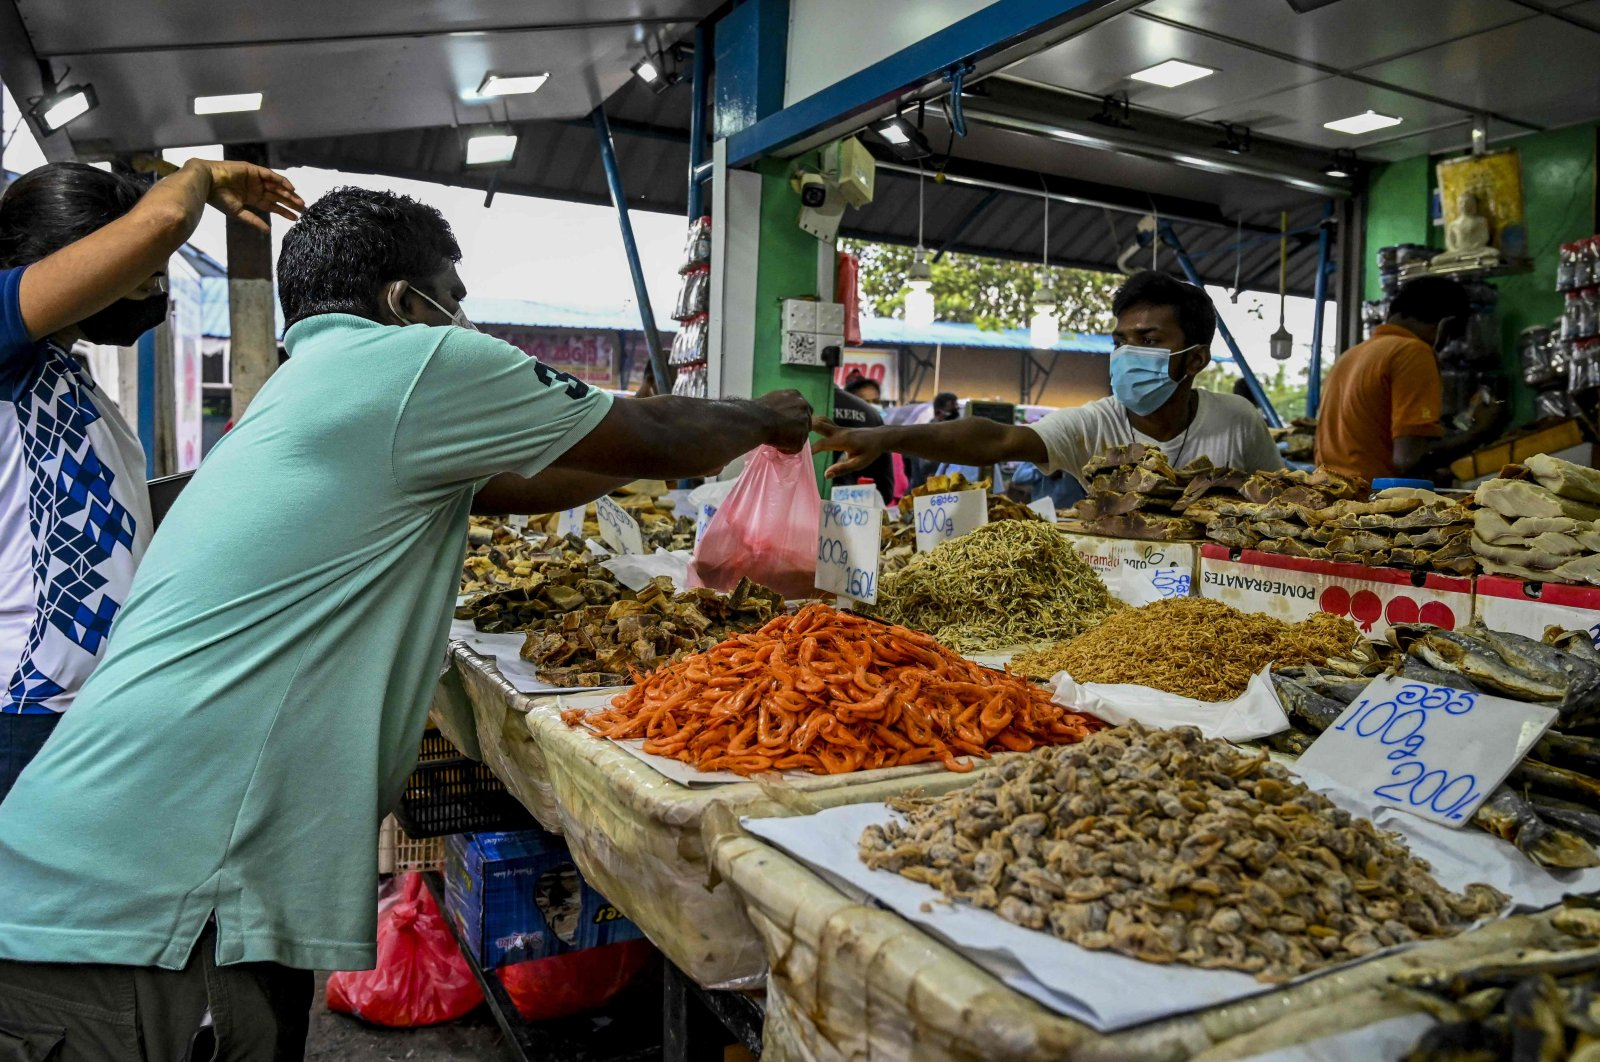 A vendor (R) sells dried fish at a market in Colombo on Aug. 28, 2021, after Sri Lanka extended a stringent COVID-19 curfew for another week after reporting its highest daily death toll of more than 200. (AFP Photo)